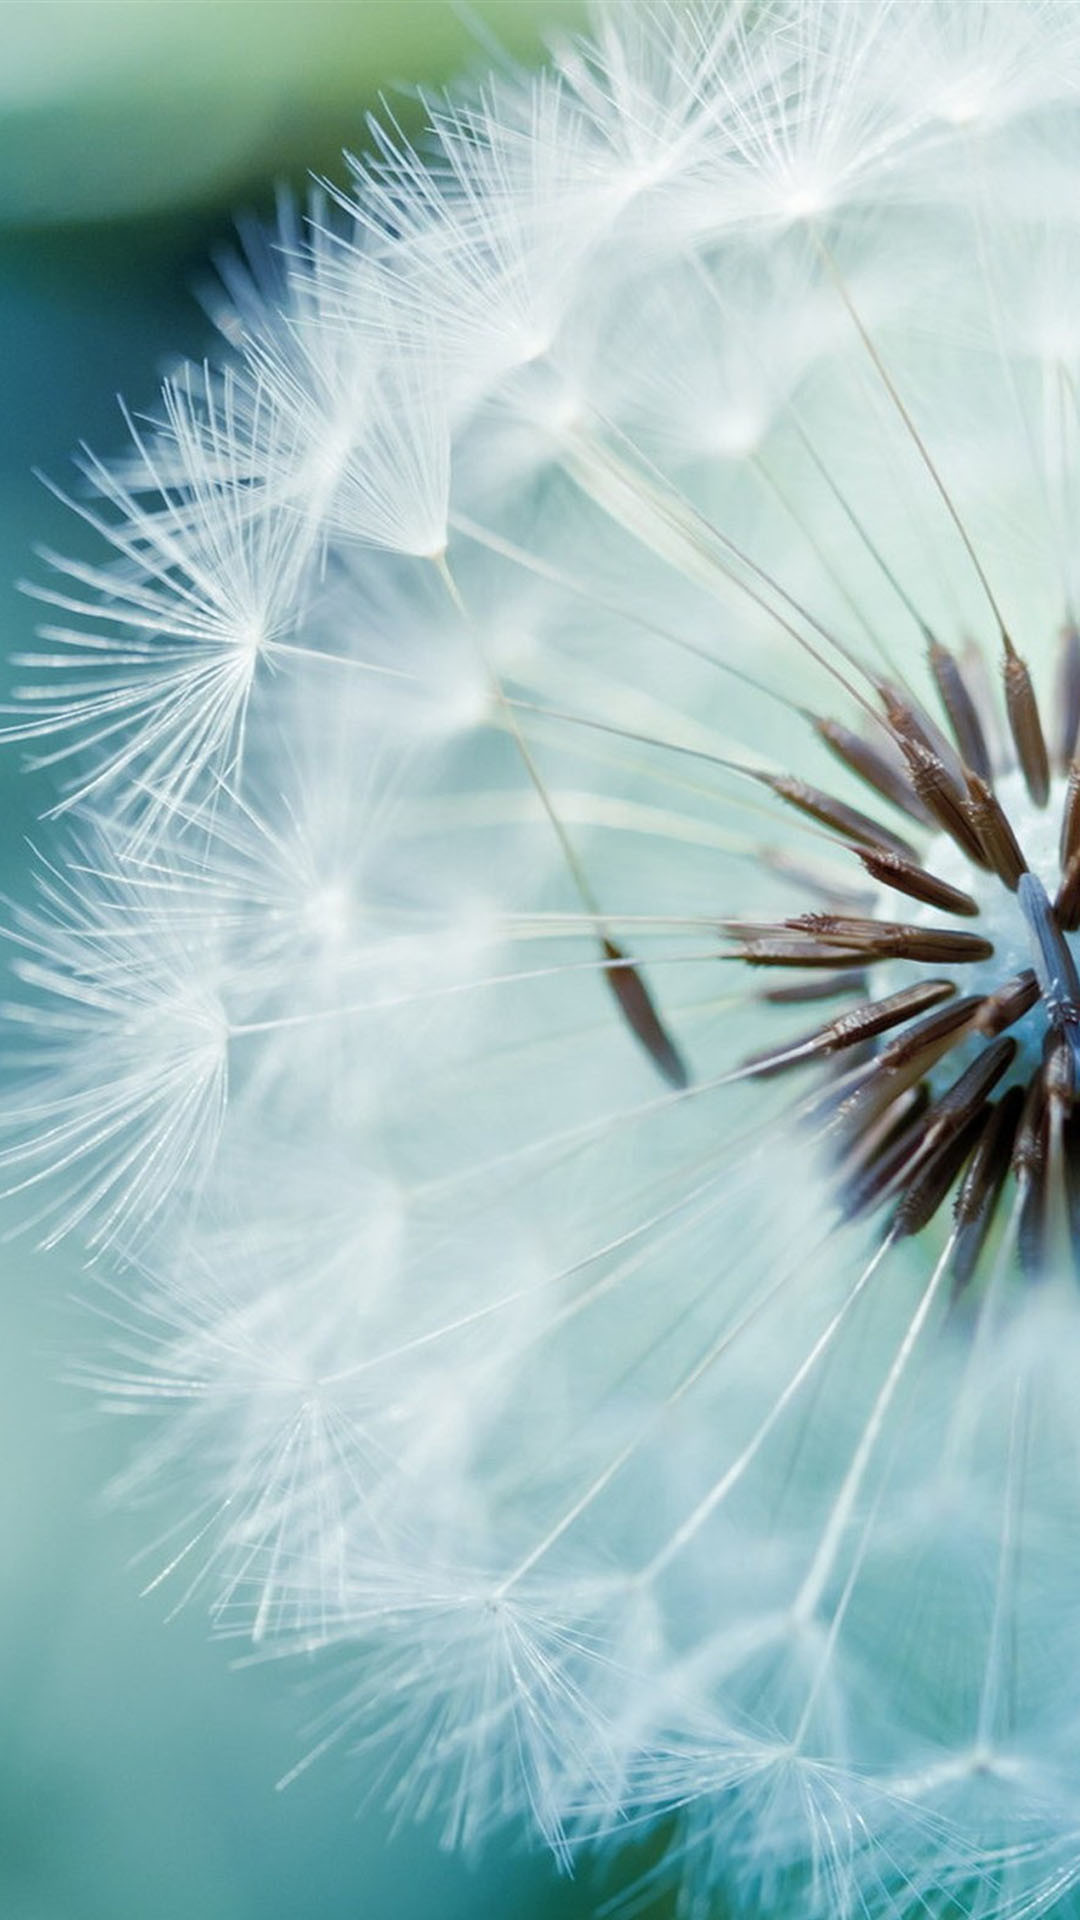 White Dandelion Macro iPhone 6 Plus HD Wallpaper.jpg 1,080×1,920 pixels